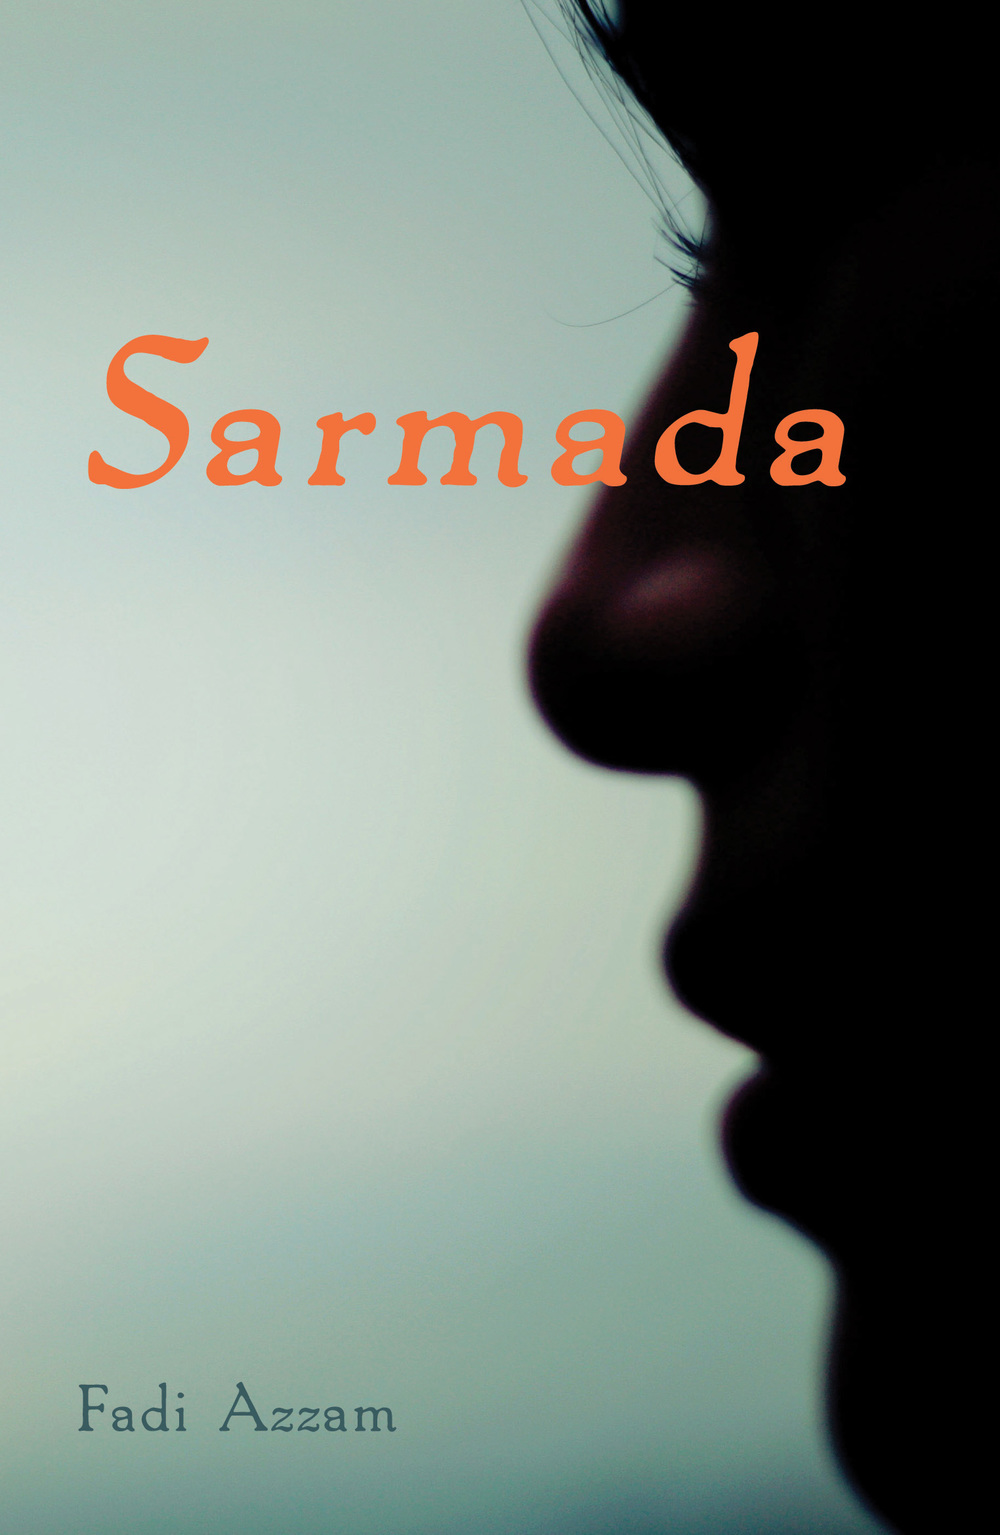 Sarmada by Fadi Azzam Published by Swallow Editions (UK) and Interlink (US) in 2011